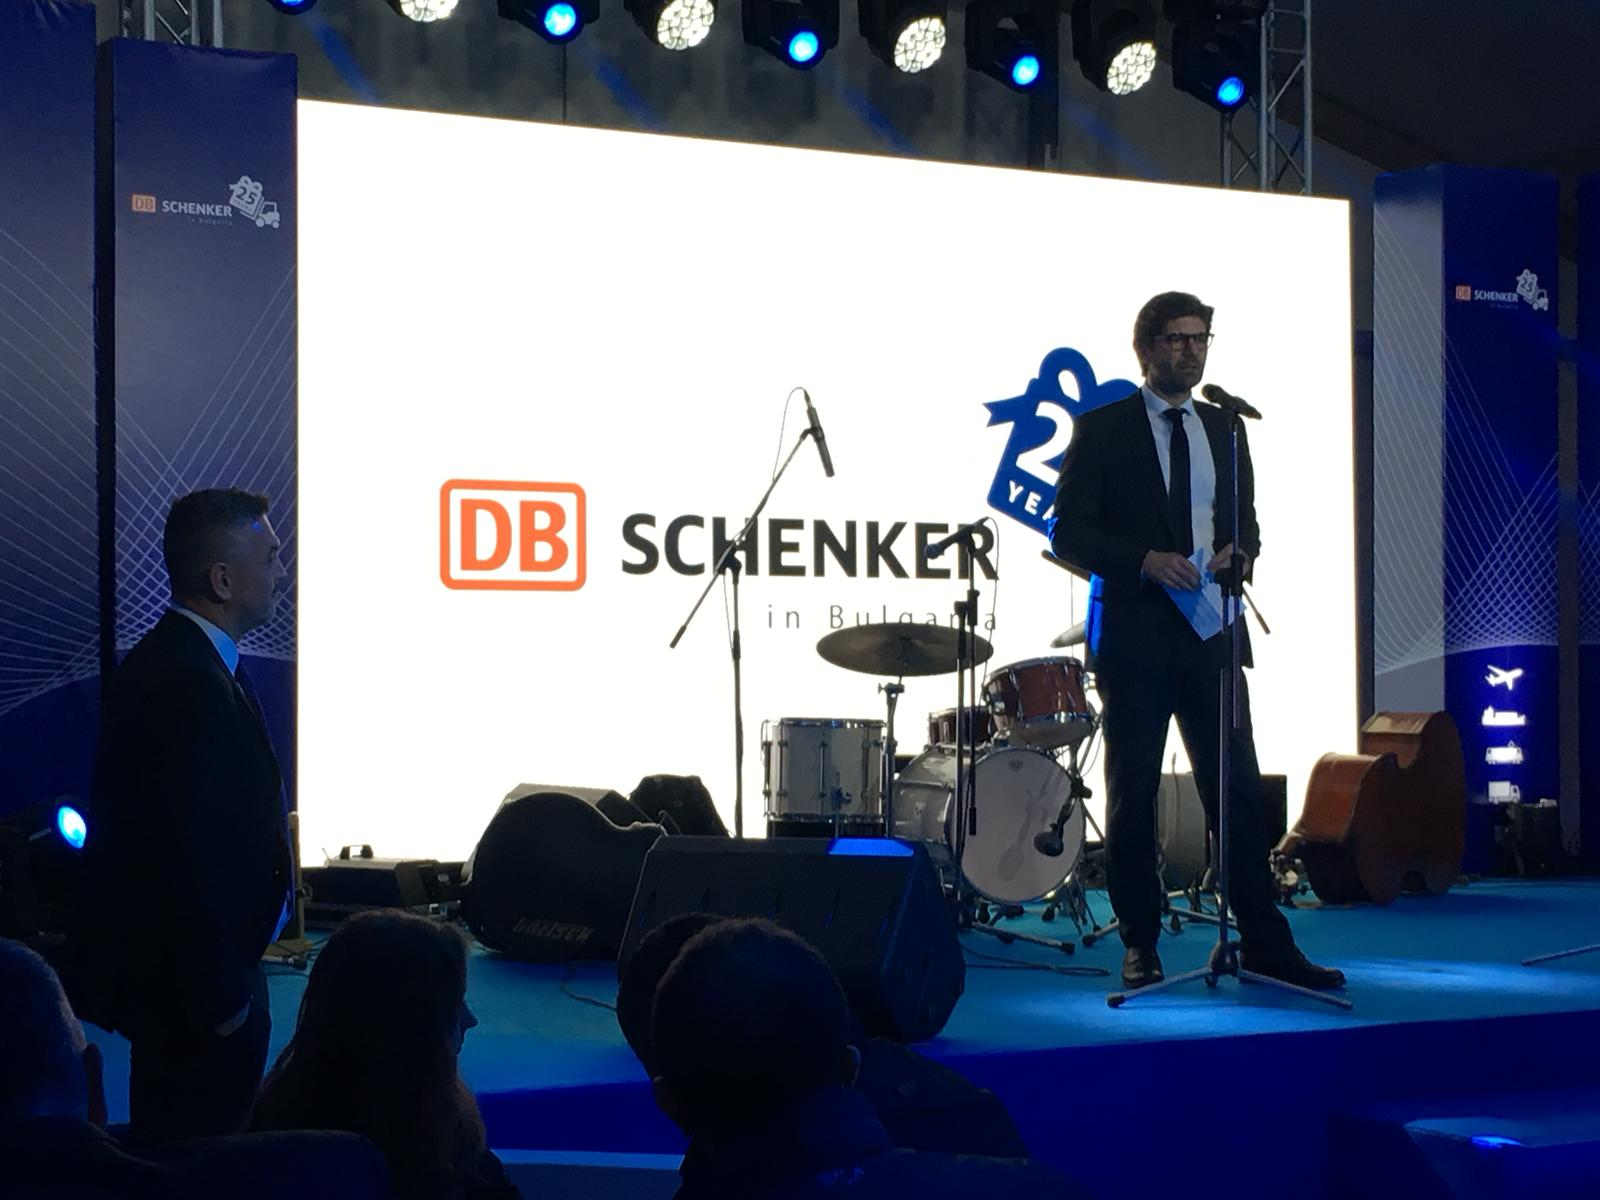 DB Schenker Bulgaria celebrates its 25th anniversary in Sofia: a history of success and achievements